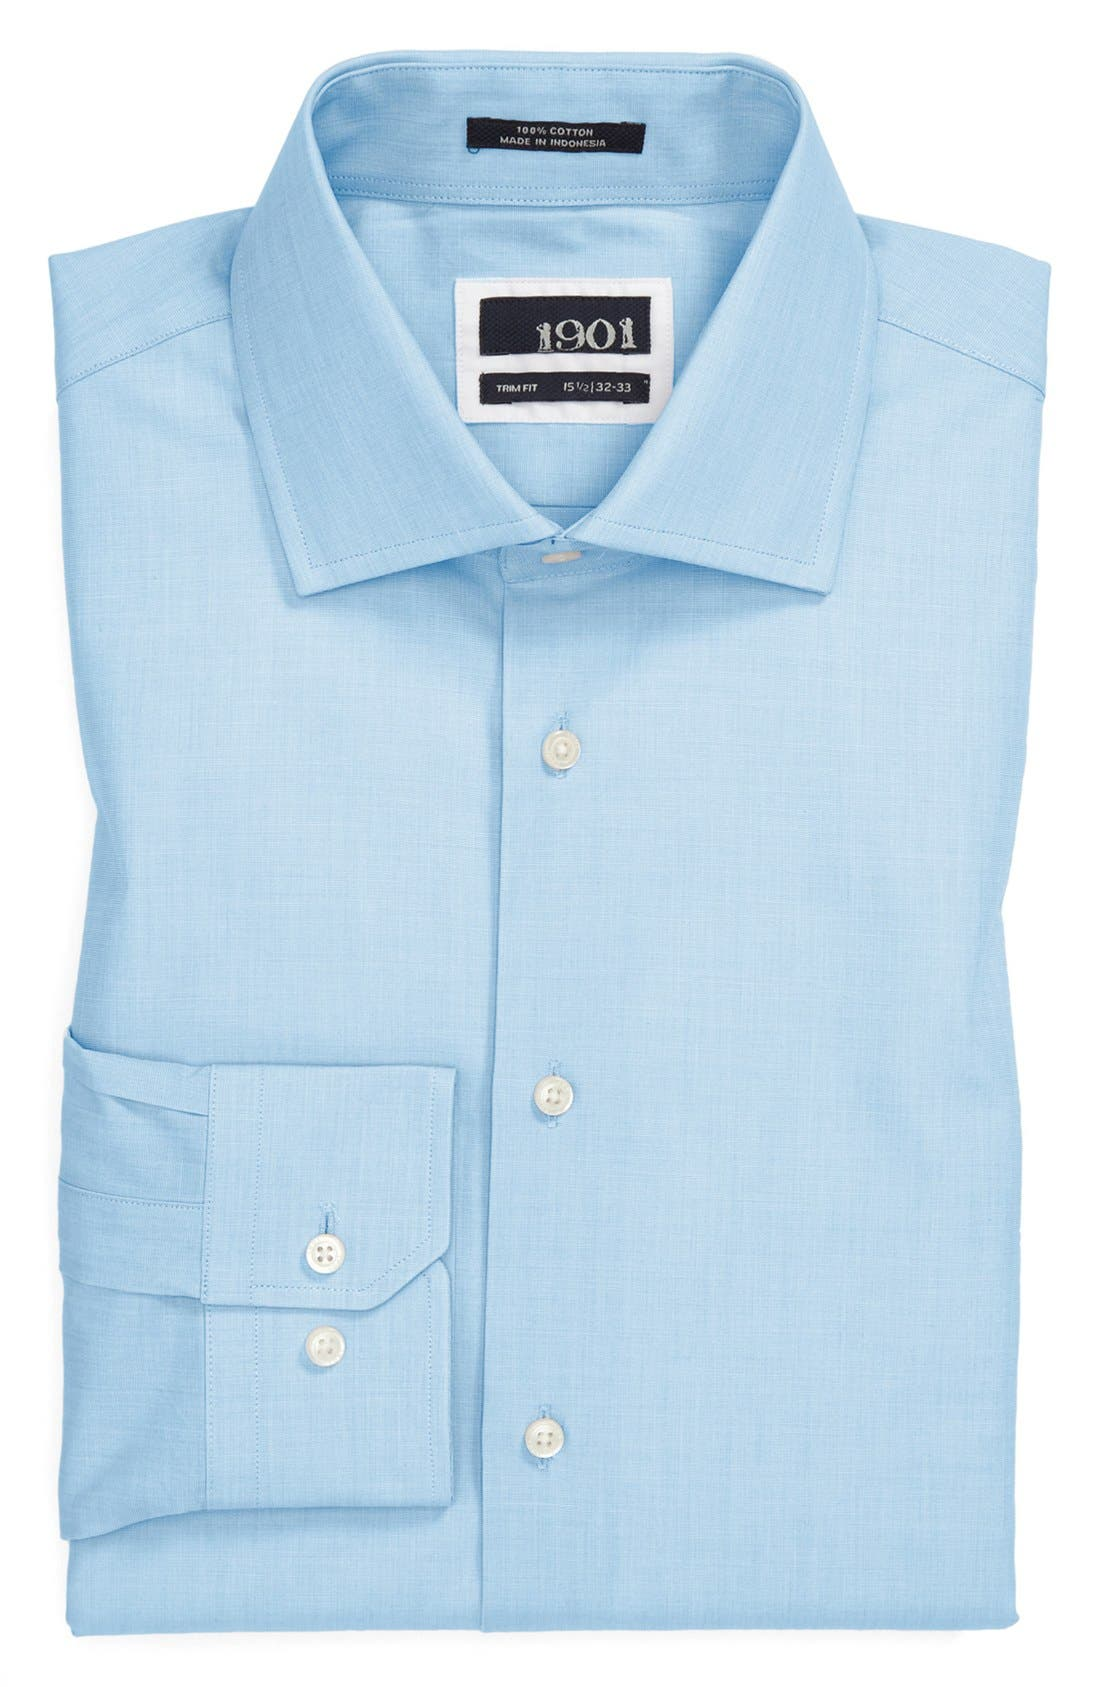 Alternate Image 1 Selected - 1901 Solid End-on-End Cotton Trim Fit Dress Shirt